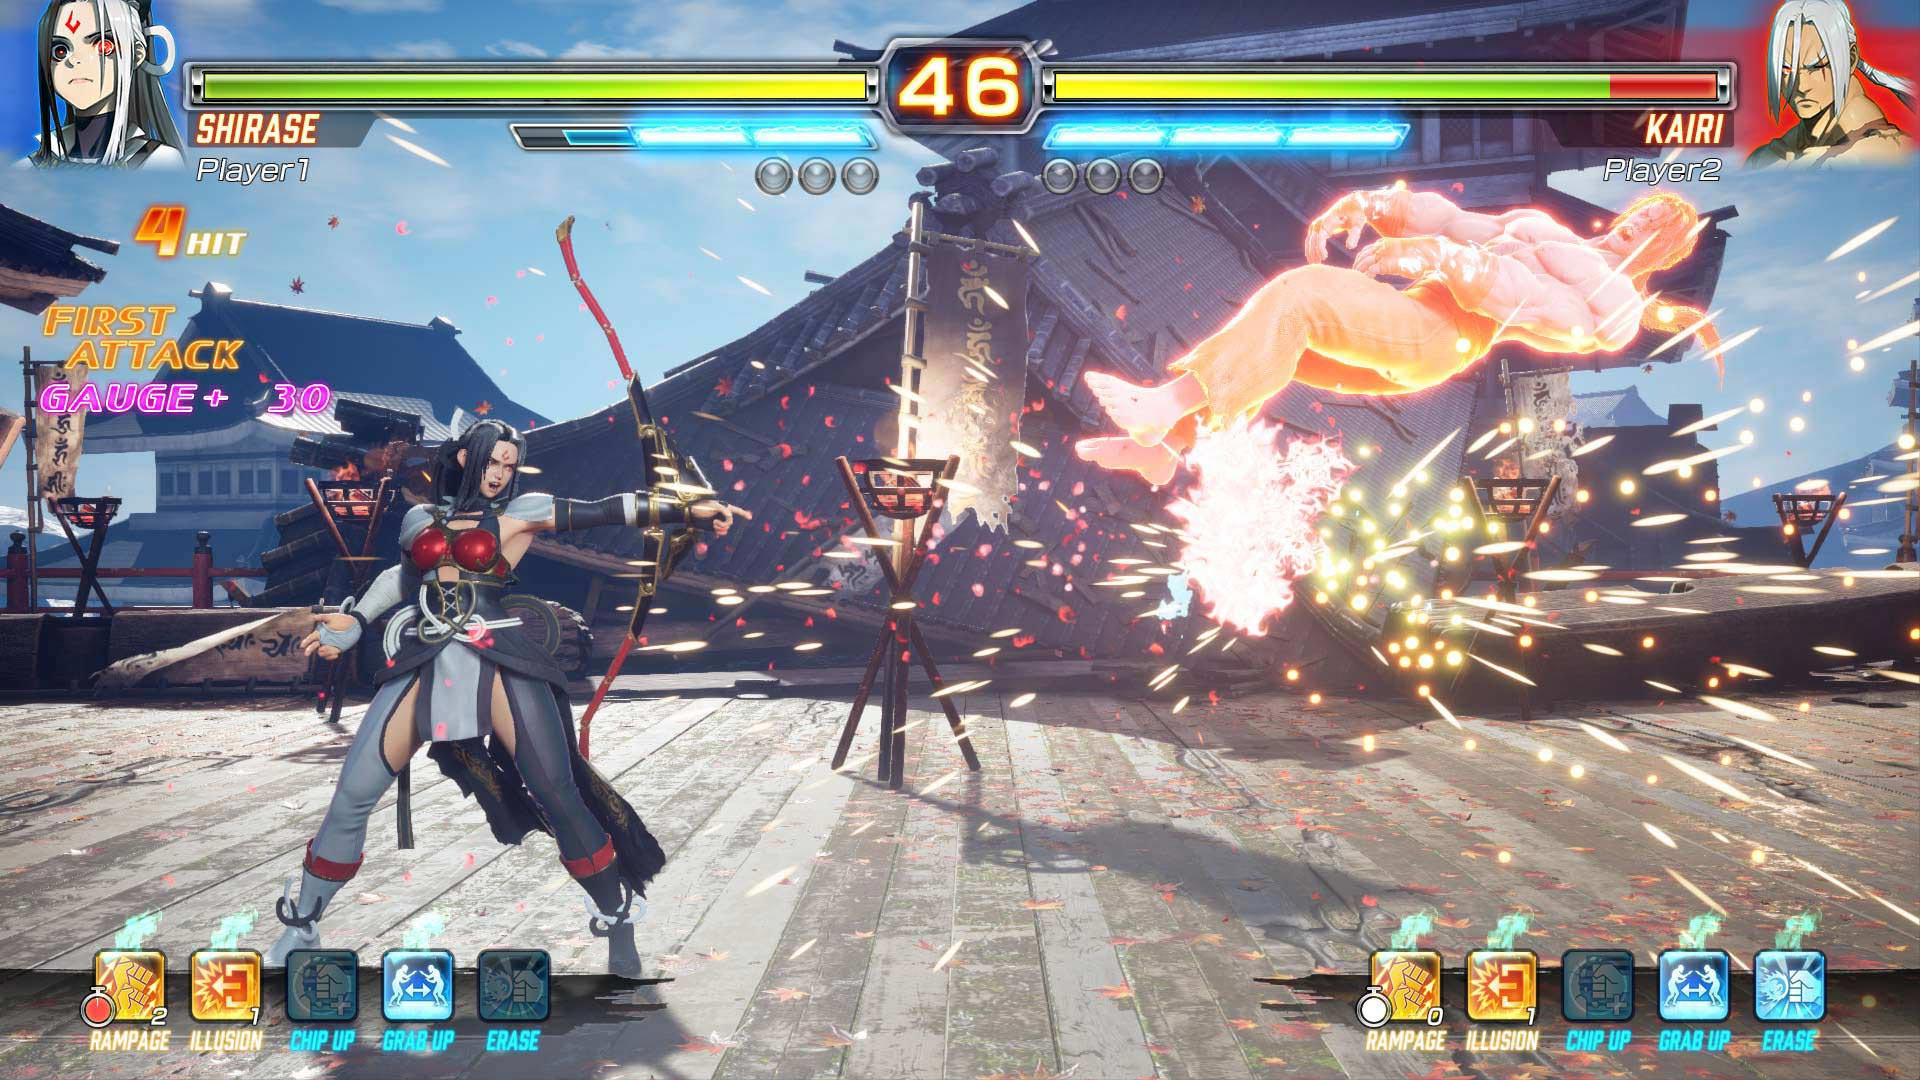 Fighting EX Layer launch screenshots 8 out of 10 image gallery